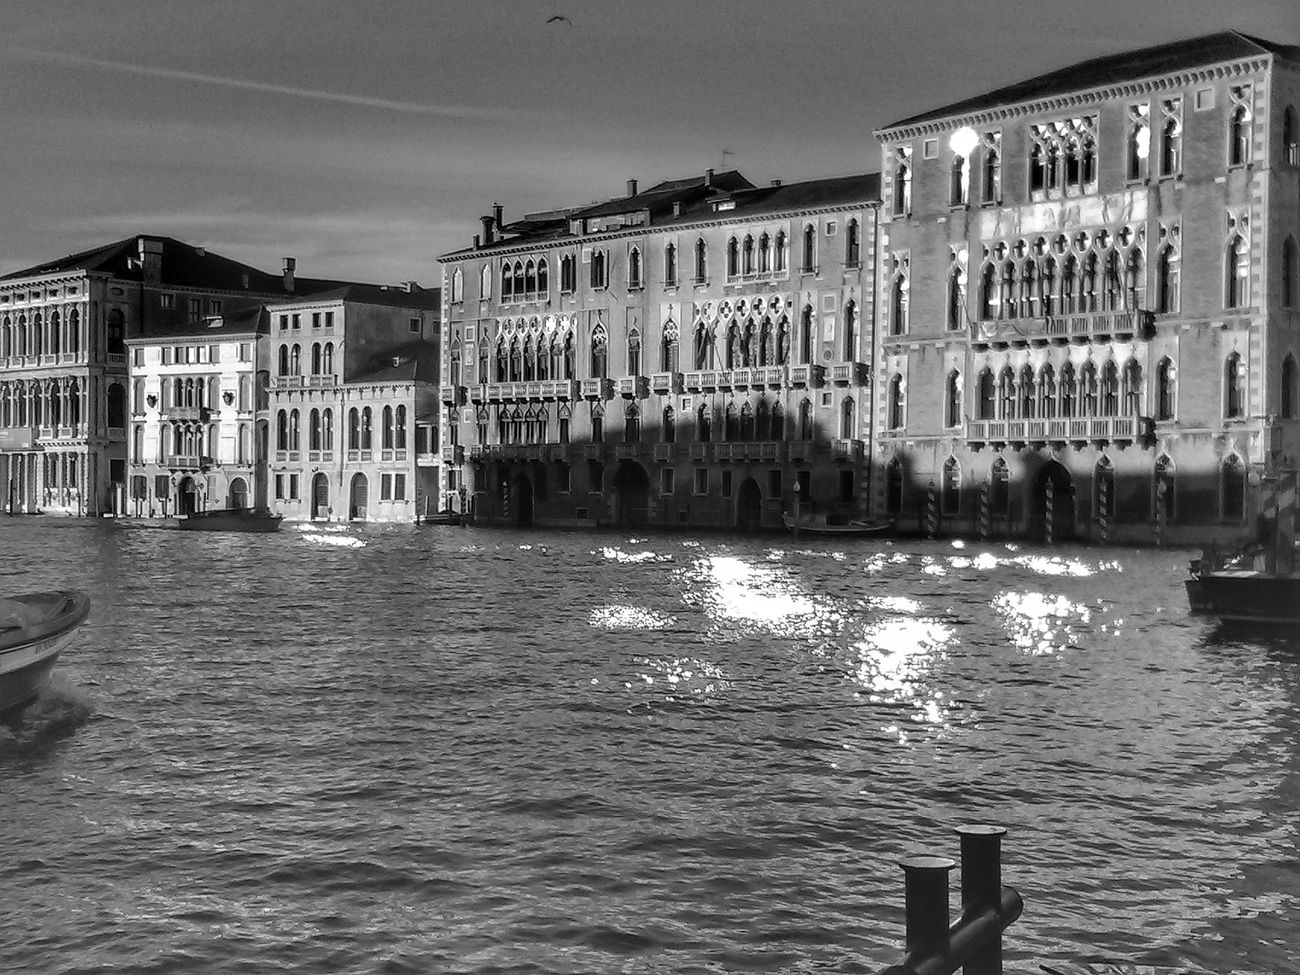 The Gran Canal of Venice Architecture Building Exterior City Built Structure Day No People Water Photography Travelling Photography Vacation Landscape Photography Venezia Travel Travel Destinations City Photographer Travelling Paisaje Paisajes únicos Paisajes Naturales Picture Like No Other Pictureoftheday Canal Photo Venezia Italia